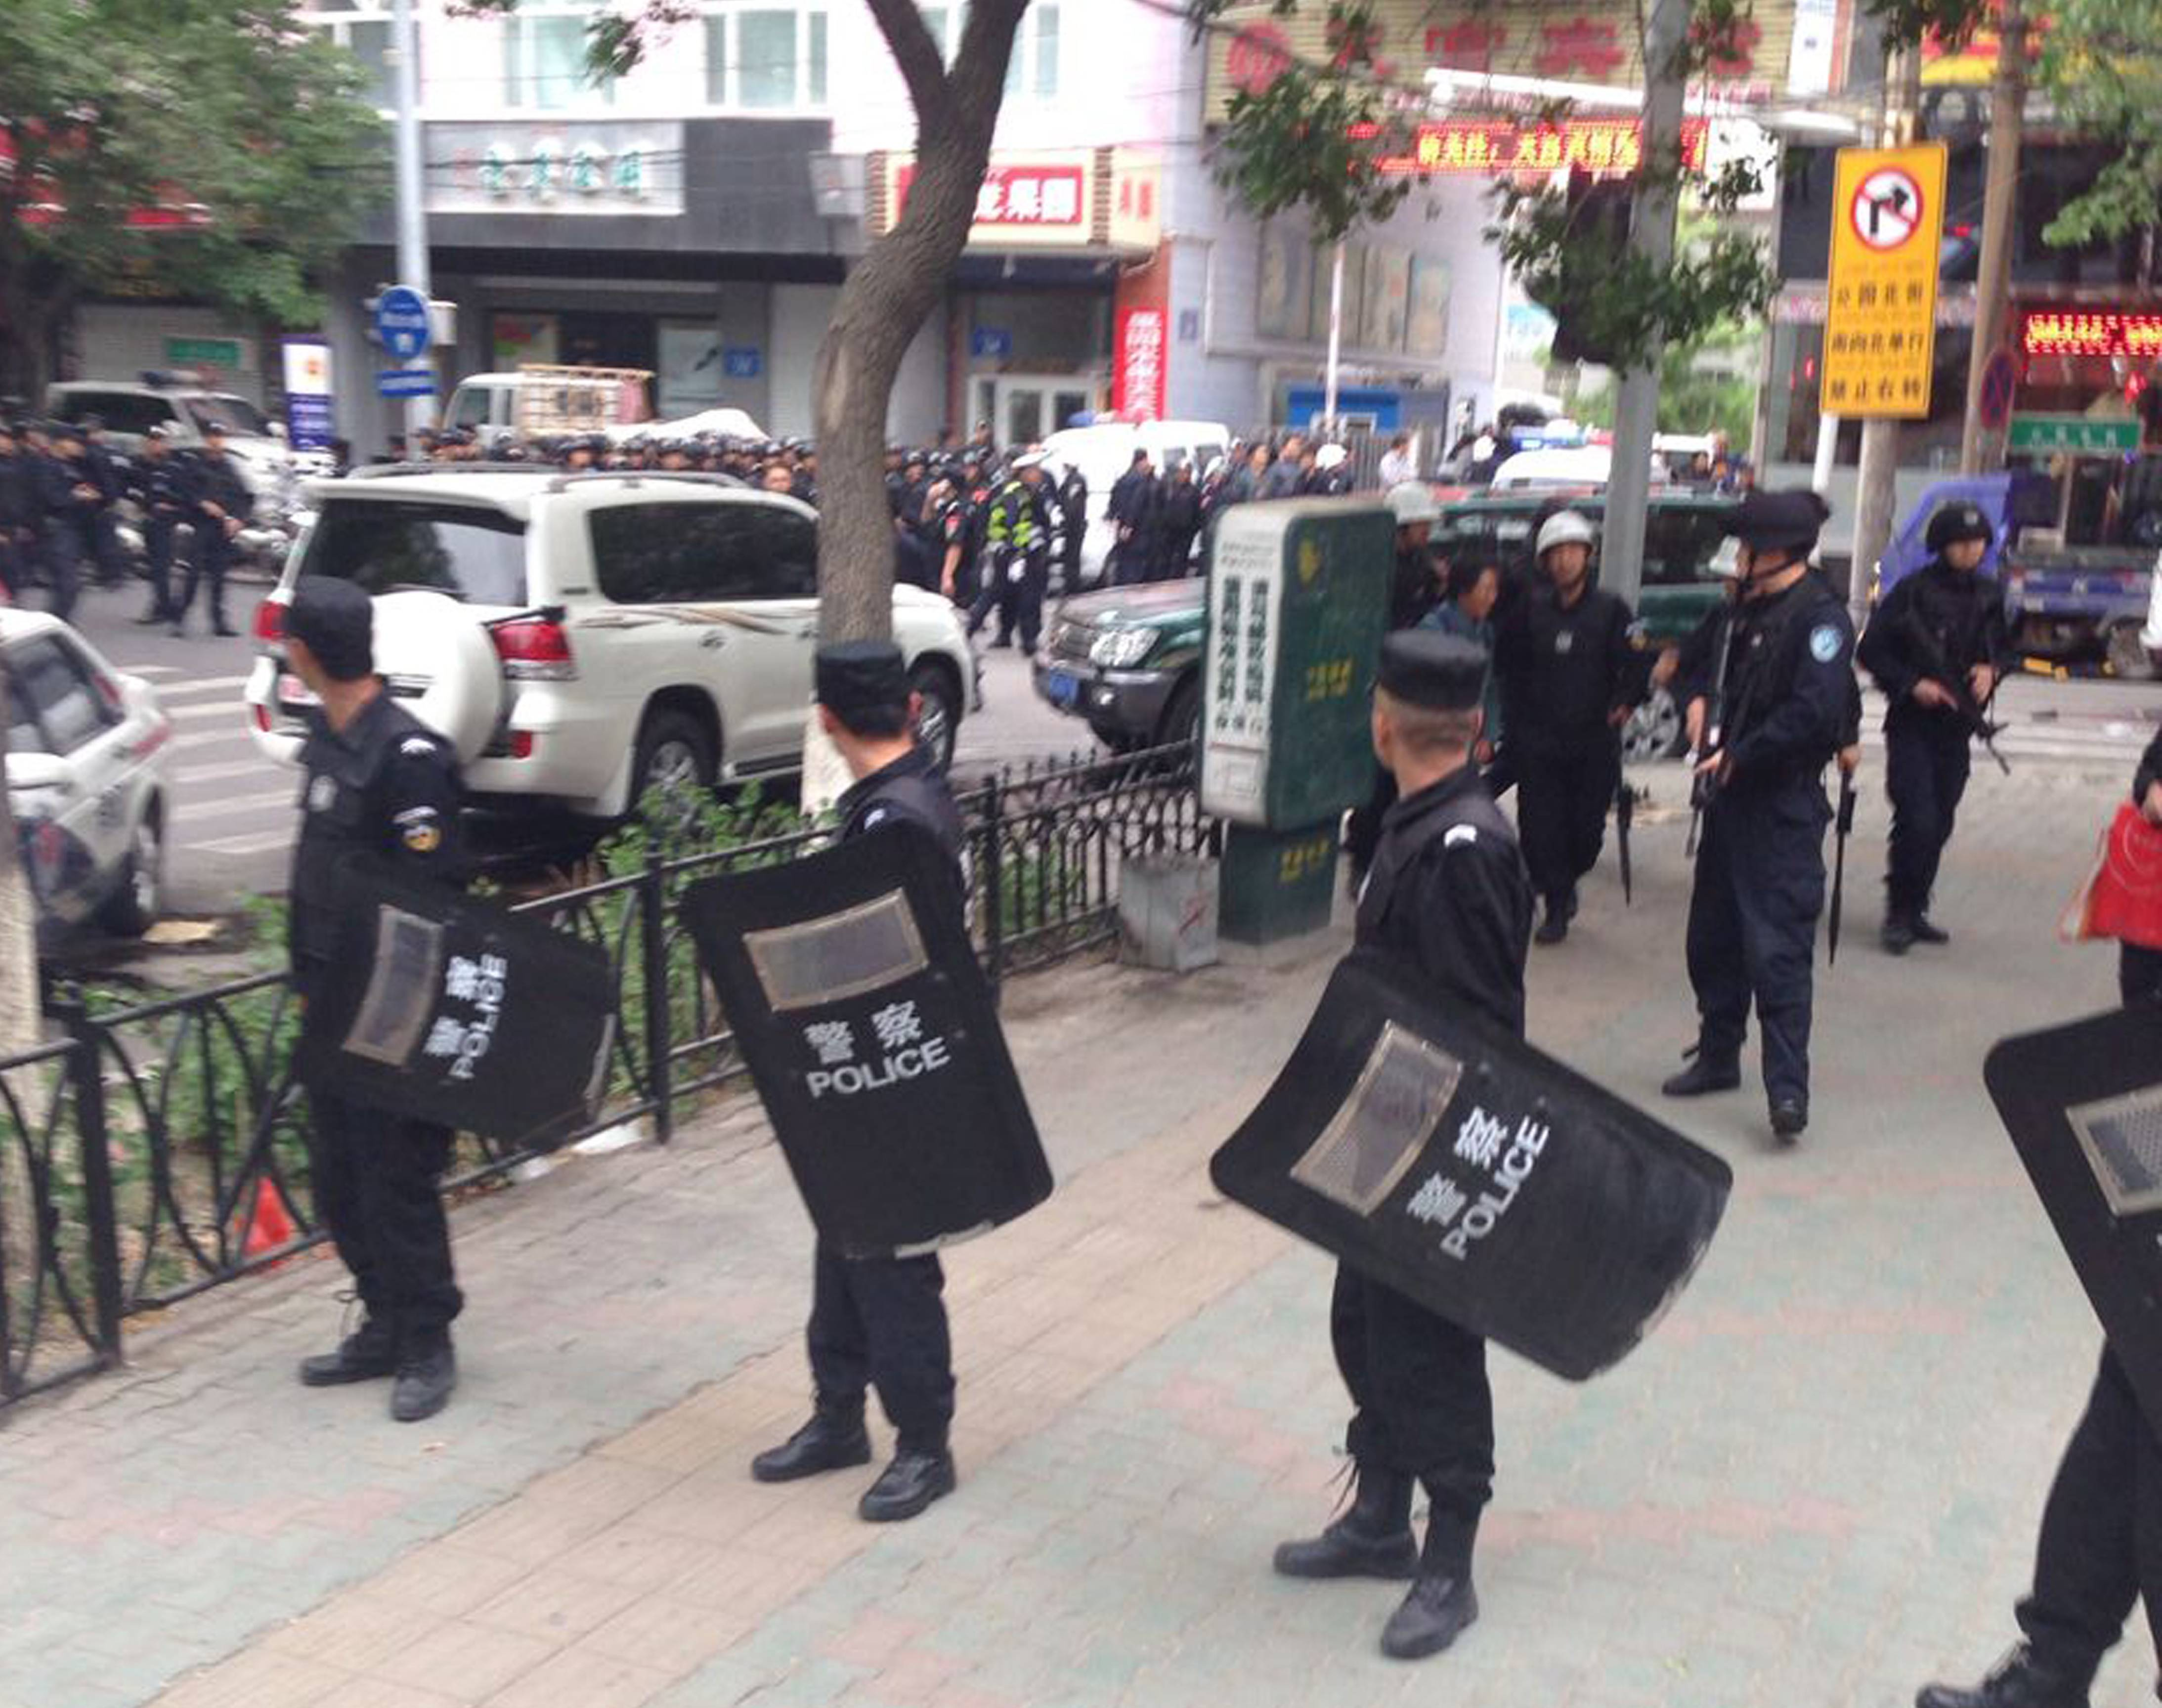 Attackers crashed a pair of vehicles and tossed explosives in an attack Thursday near an open air market in the capital of China's volatile northwestern region of Xinjiang, state media reported.